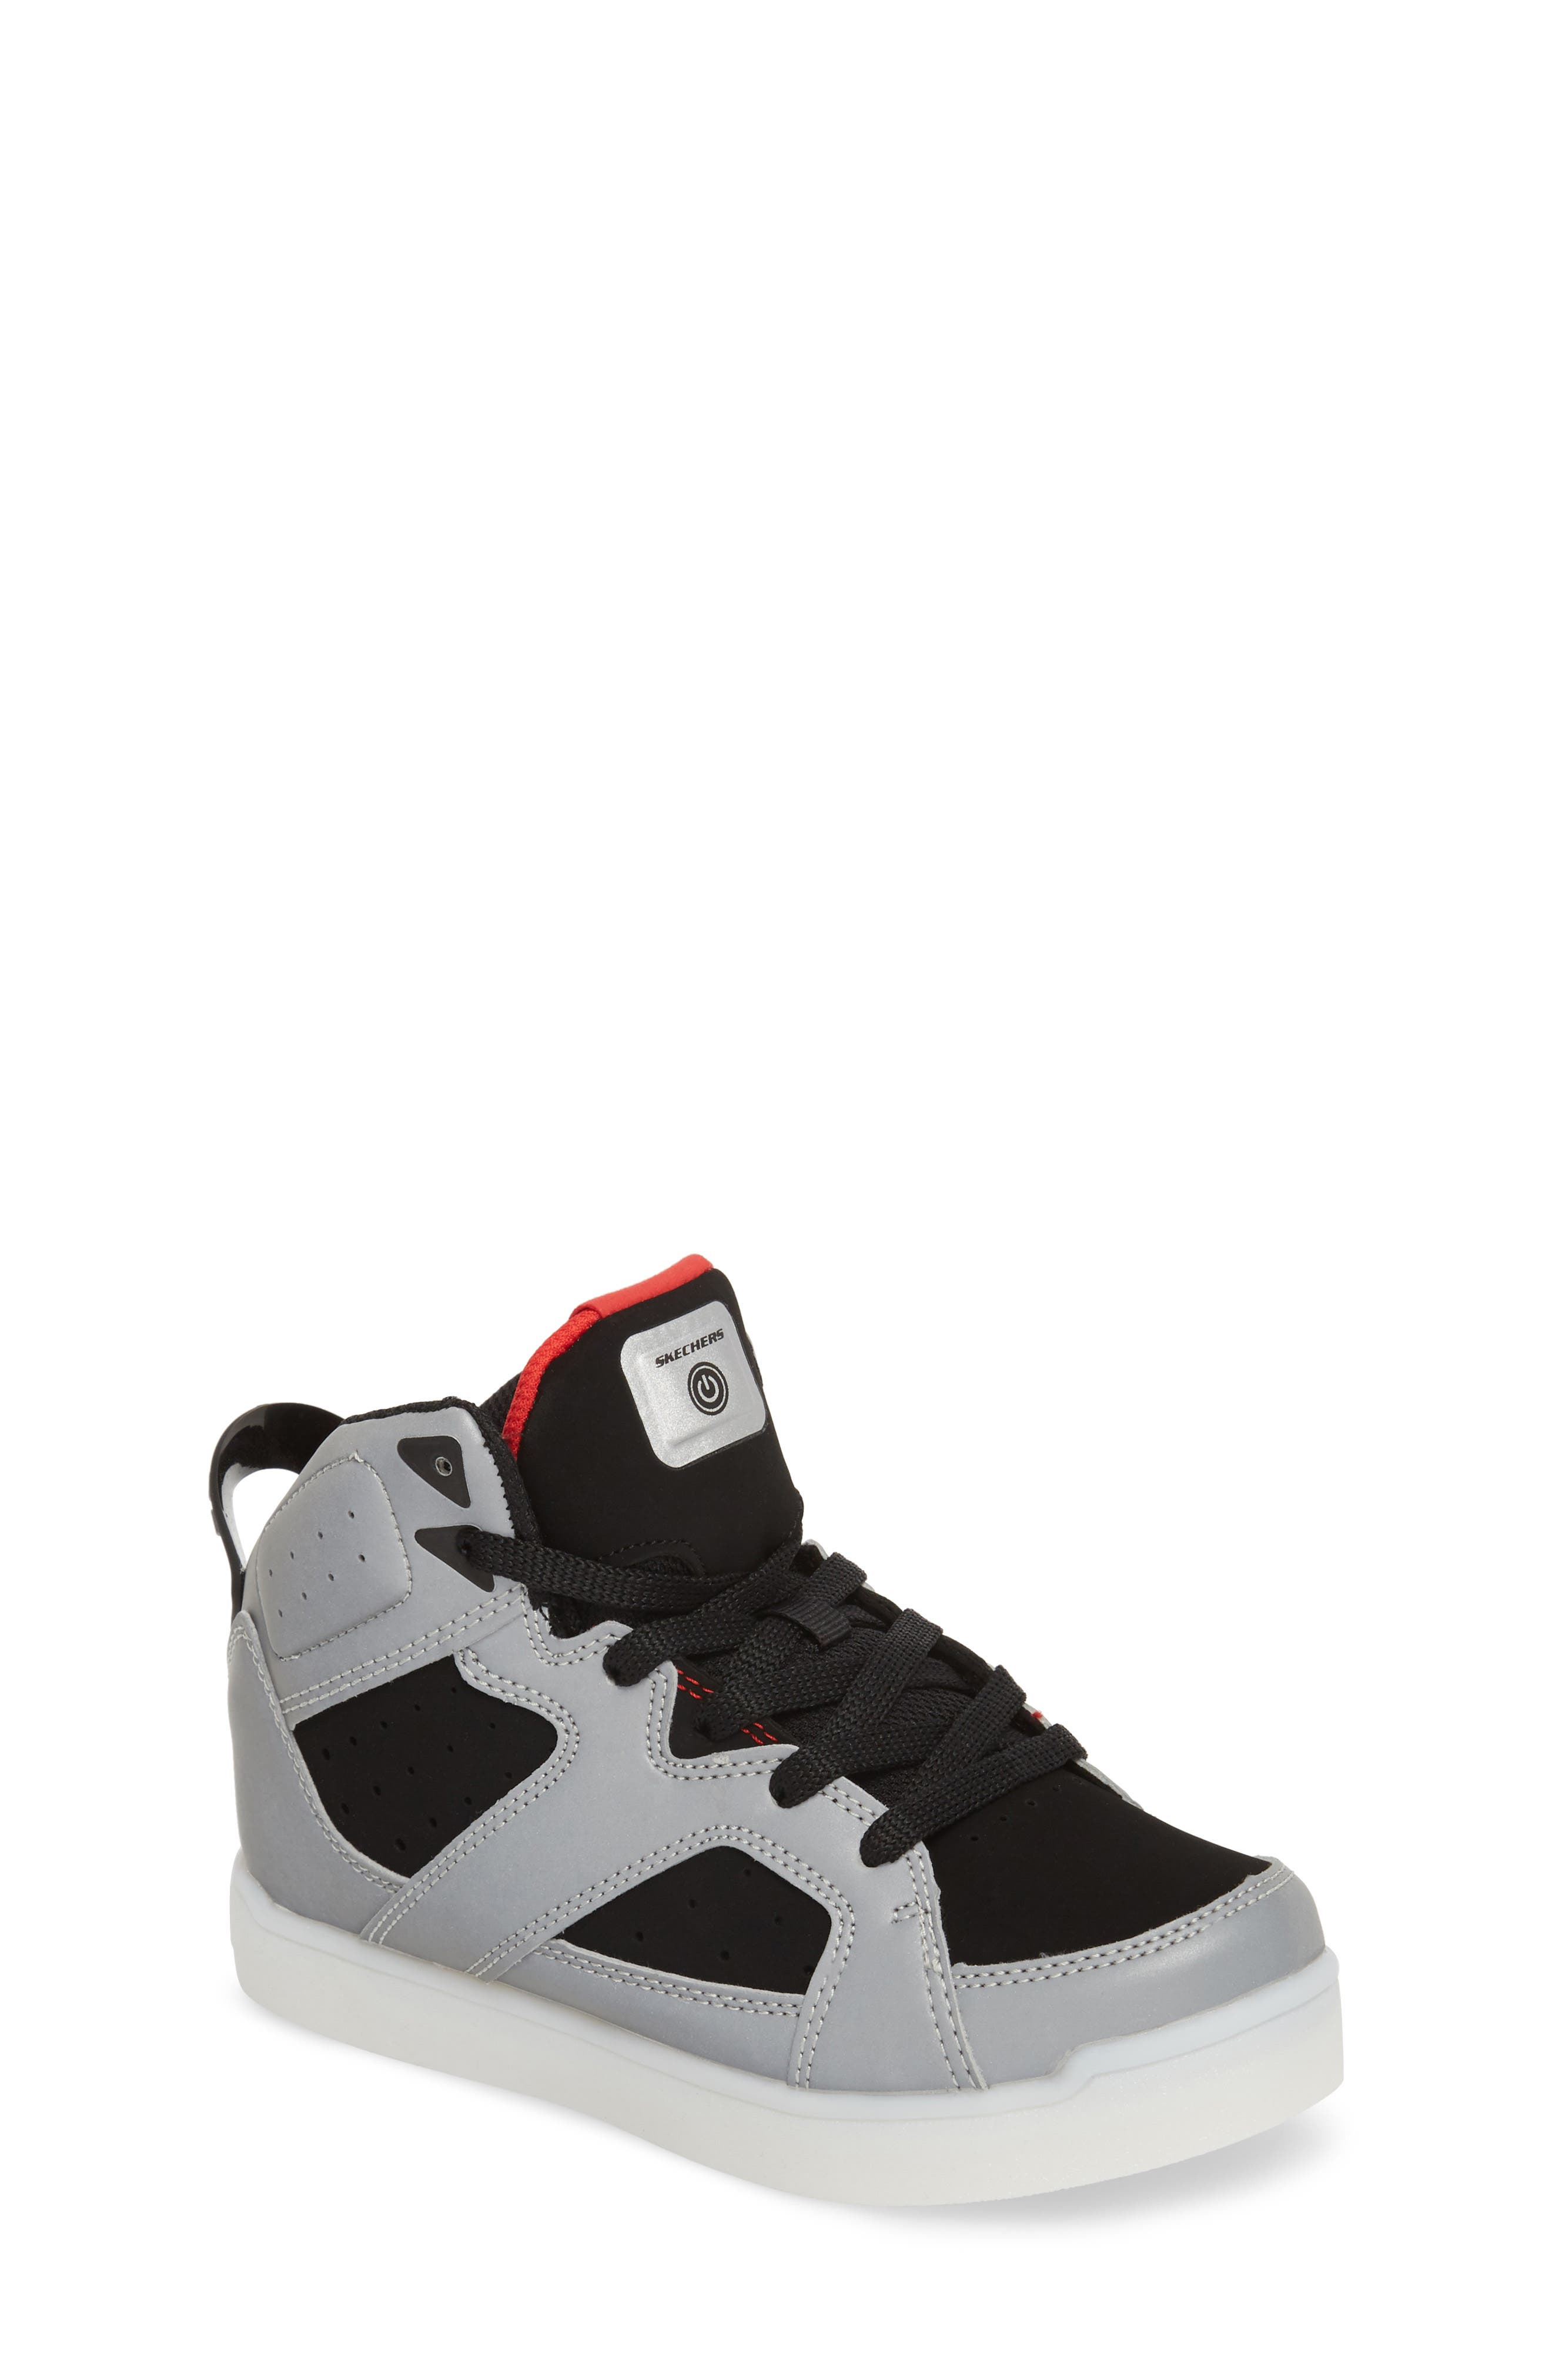 Energy Lights Pro Show Stopper High Top Sneaker,                         Main,                         color, 040